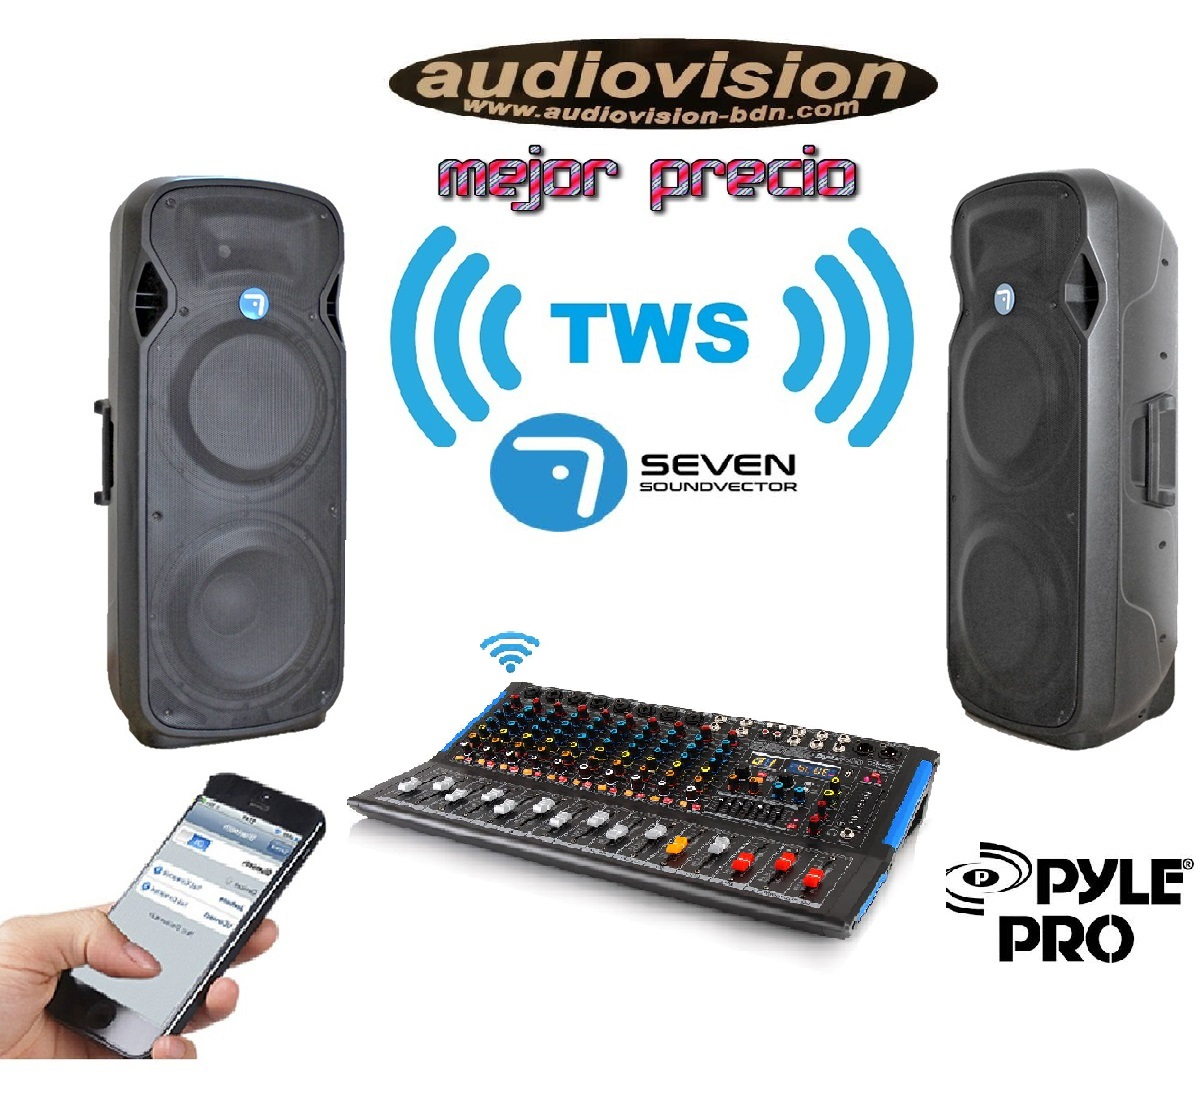 PACK PRO DIRECTO ] PACK4000W SEVEN* MEZCLADORA 6 CANALES PYLE* Audiovision